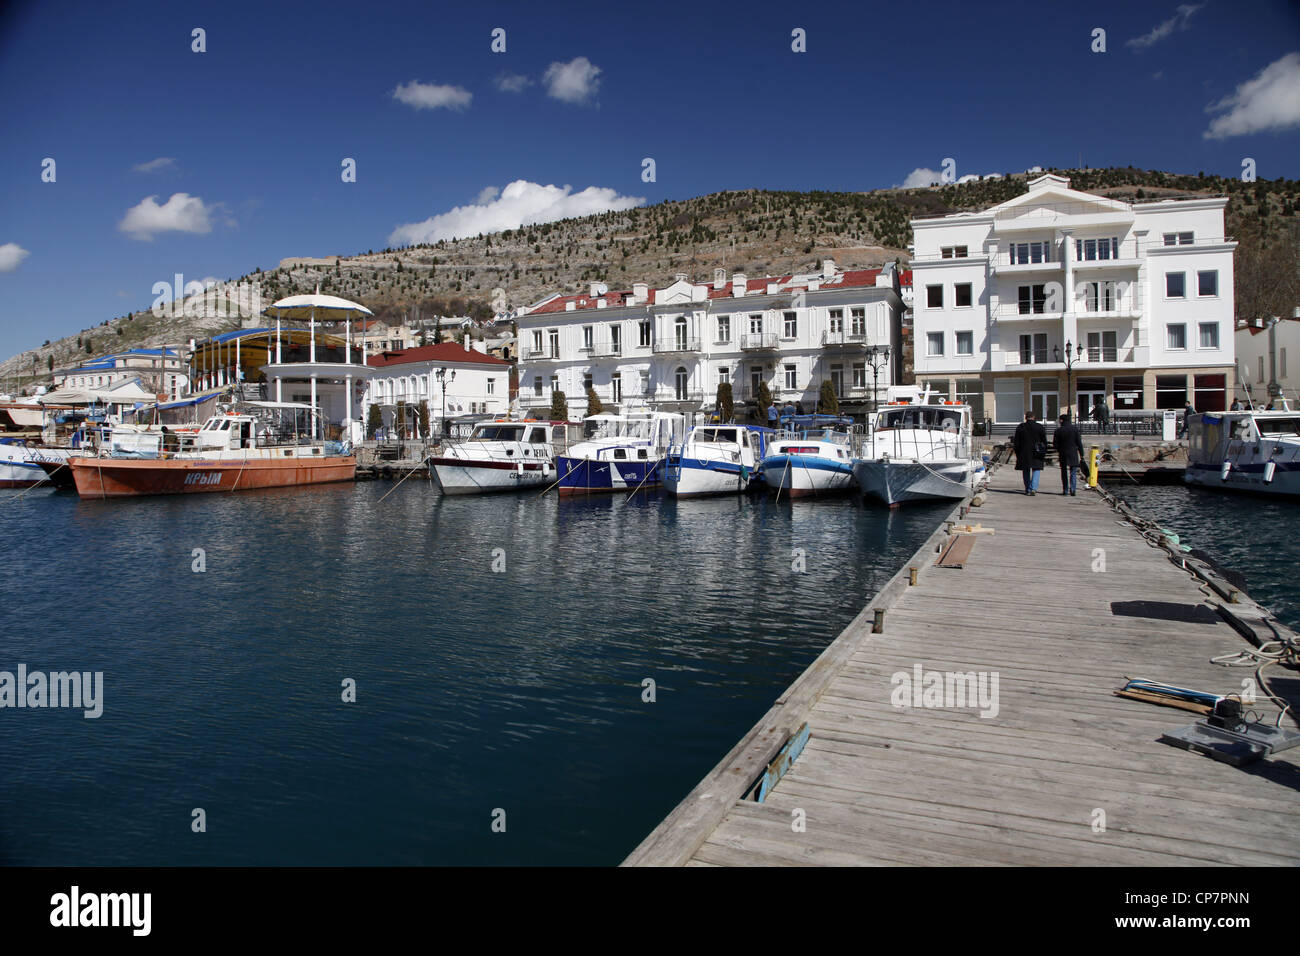 BOATS IN HARBOUR FROM JETTY BALAKLAVA CRIMEA UKRAINE 02 April 2012 - Stock Image